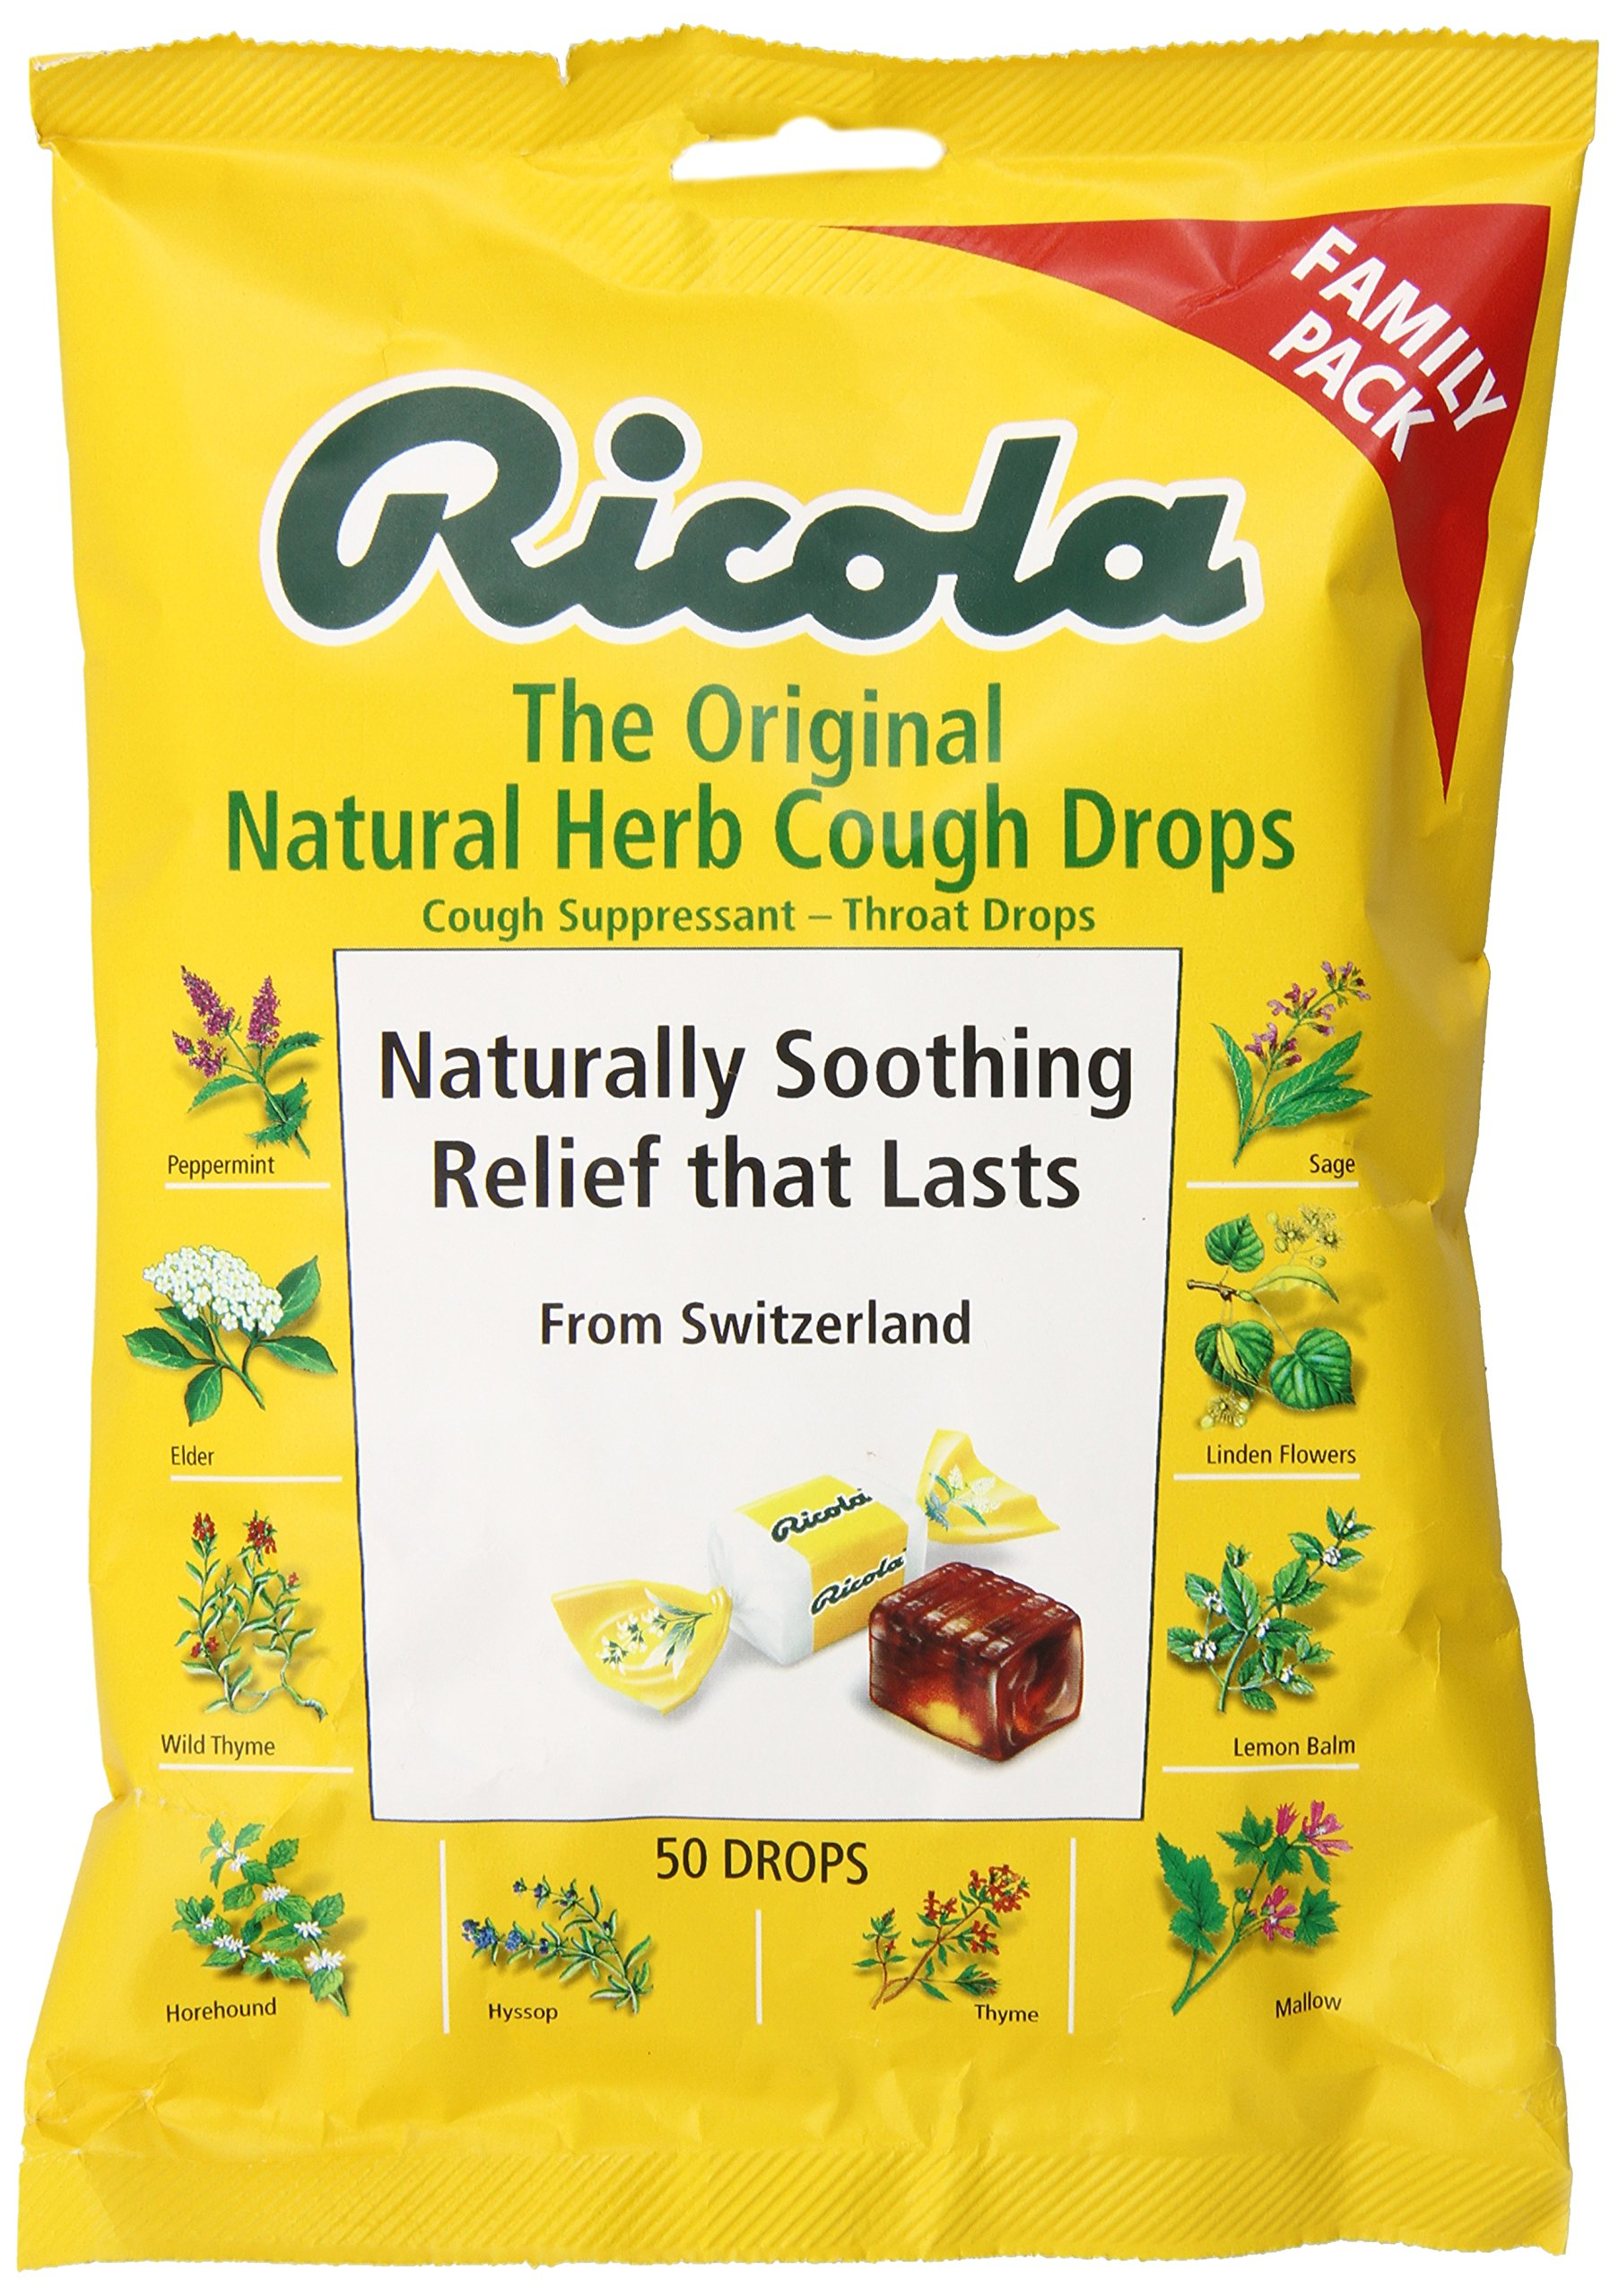 Ricola Big Bag Original Natural Herb Cough Drops, 50-Count Bags (Pack of 12) by Ricola